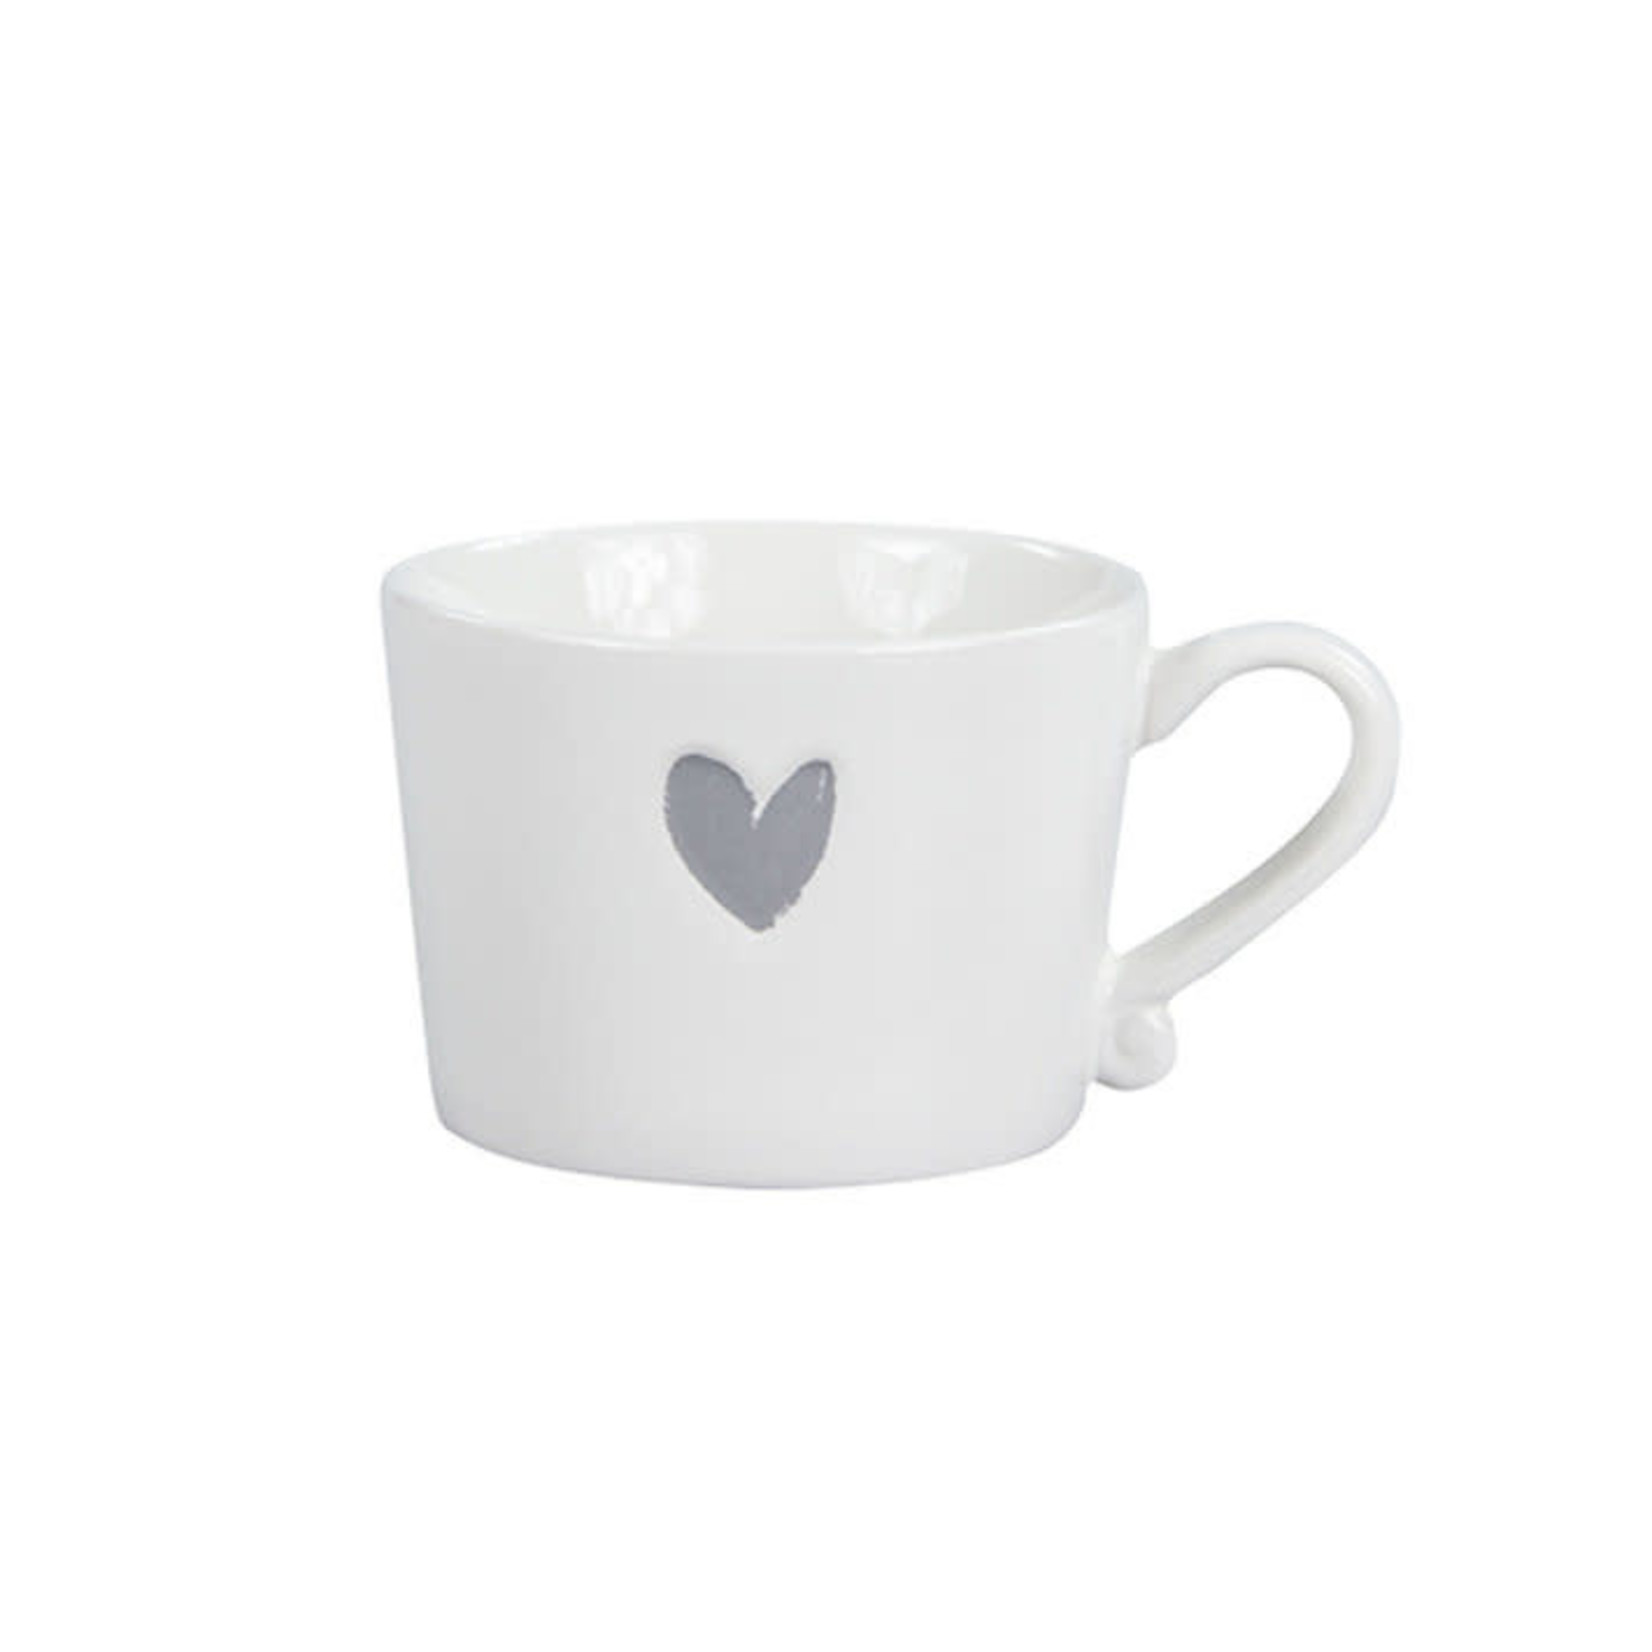 Bastion Collections Mug small White Heart in Grey